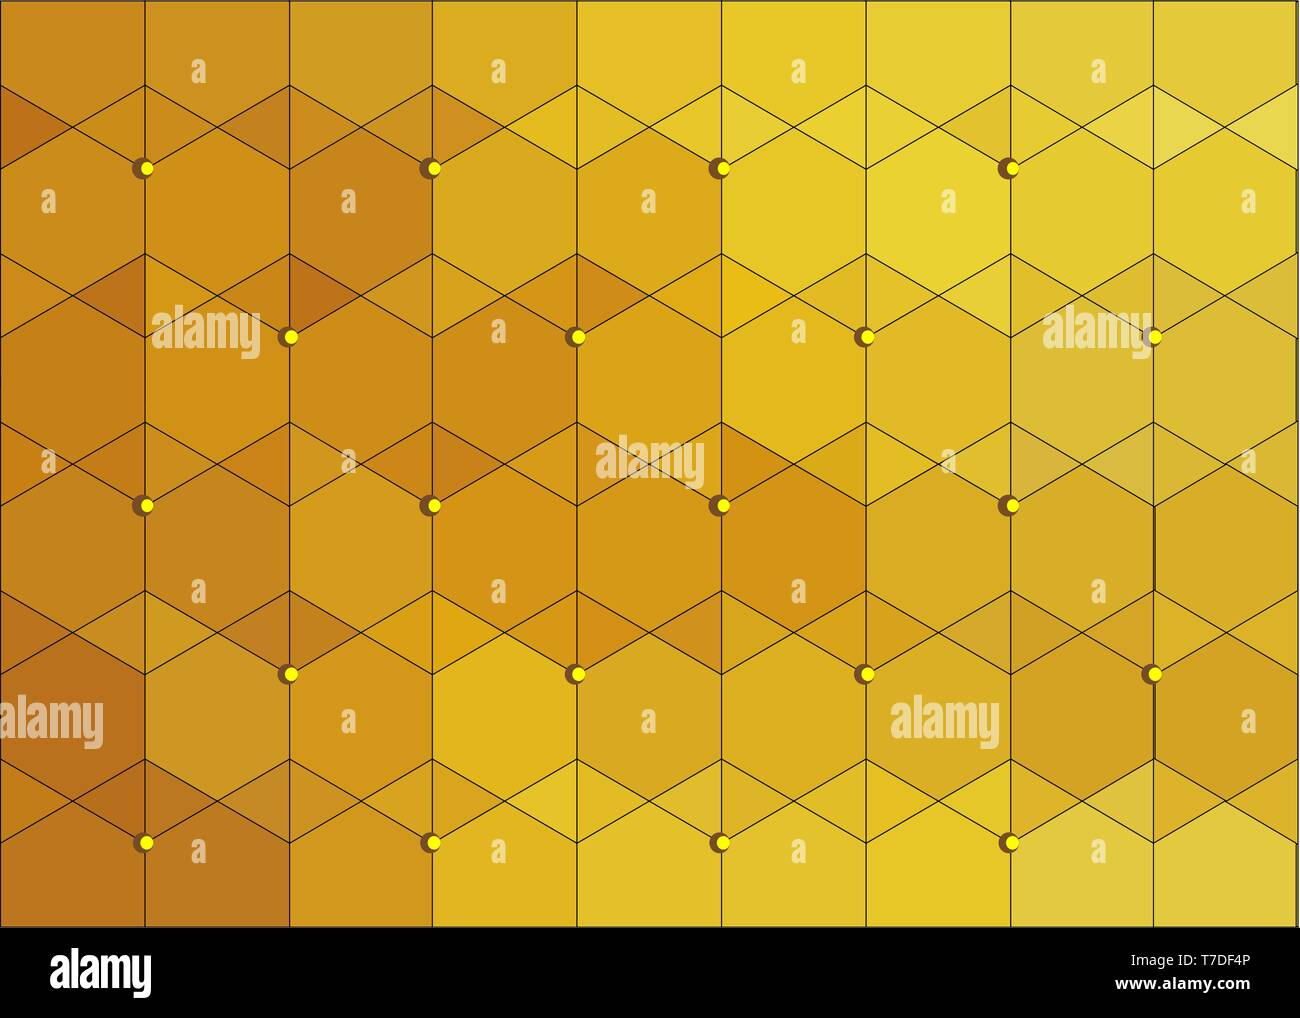 Pattern Texture Skin Surface DRAGON Scaly GOLD color - Stock Image